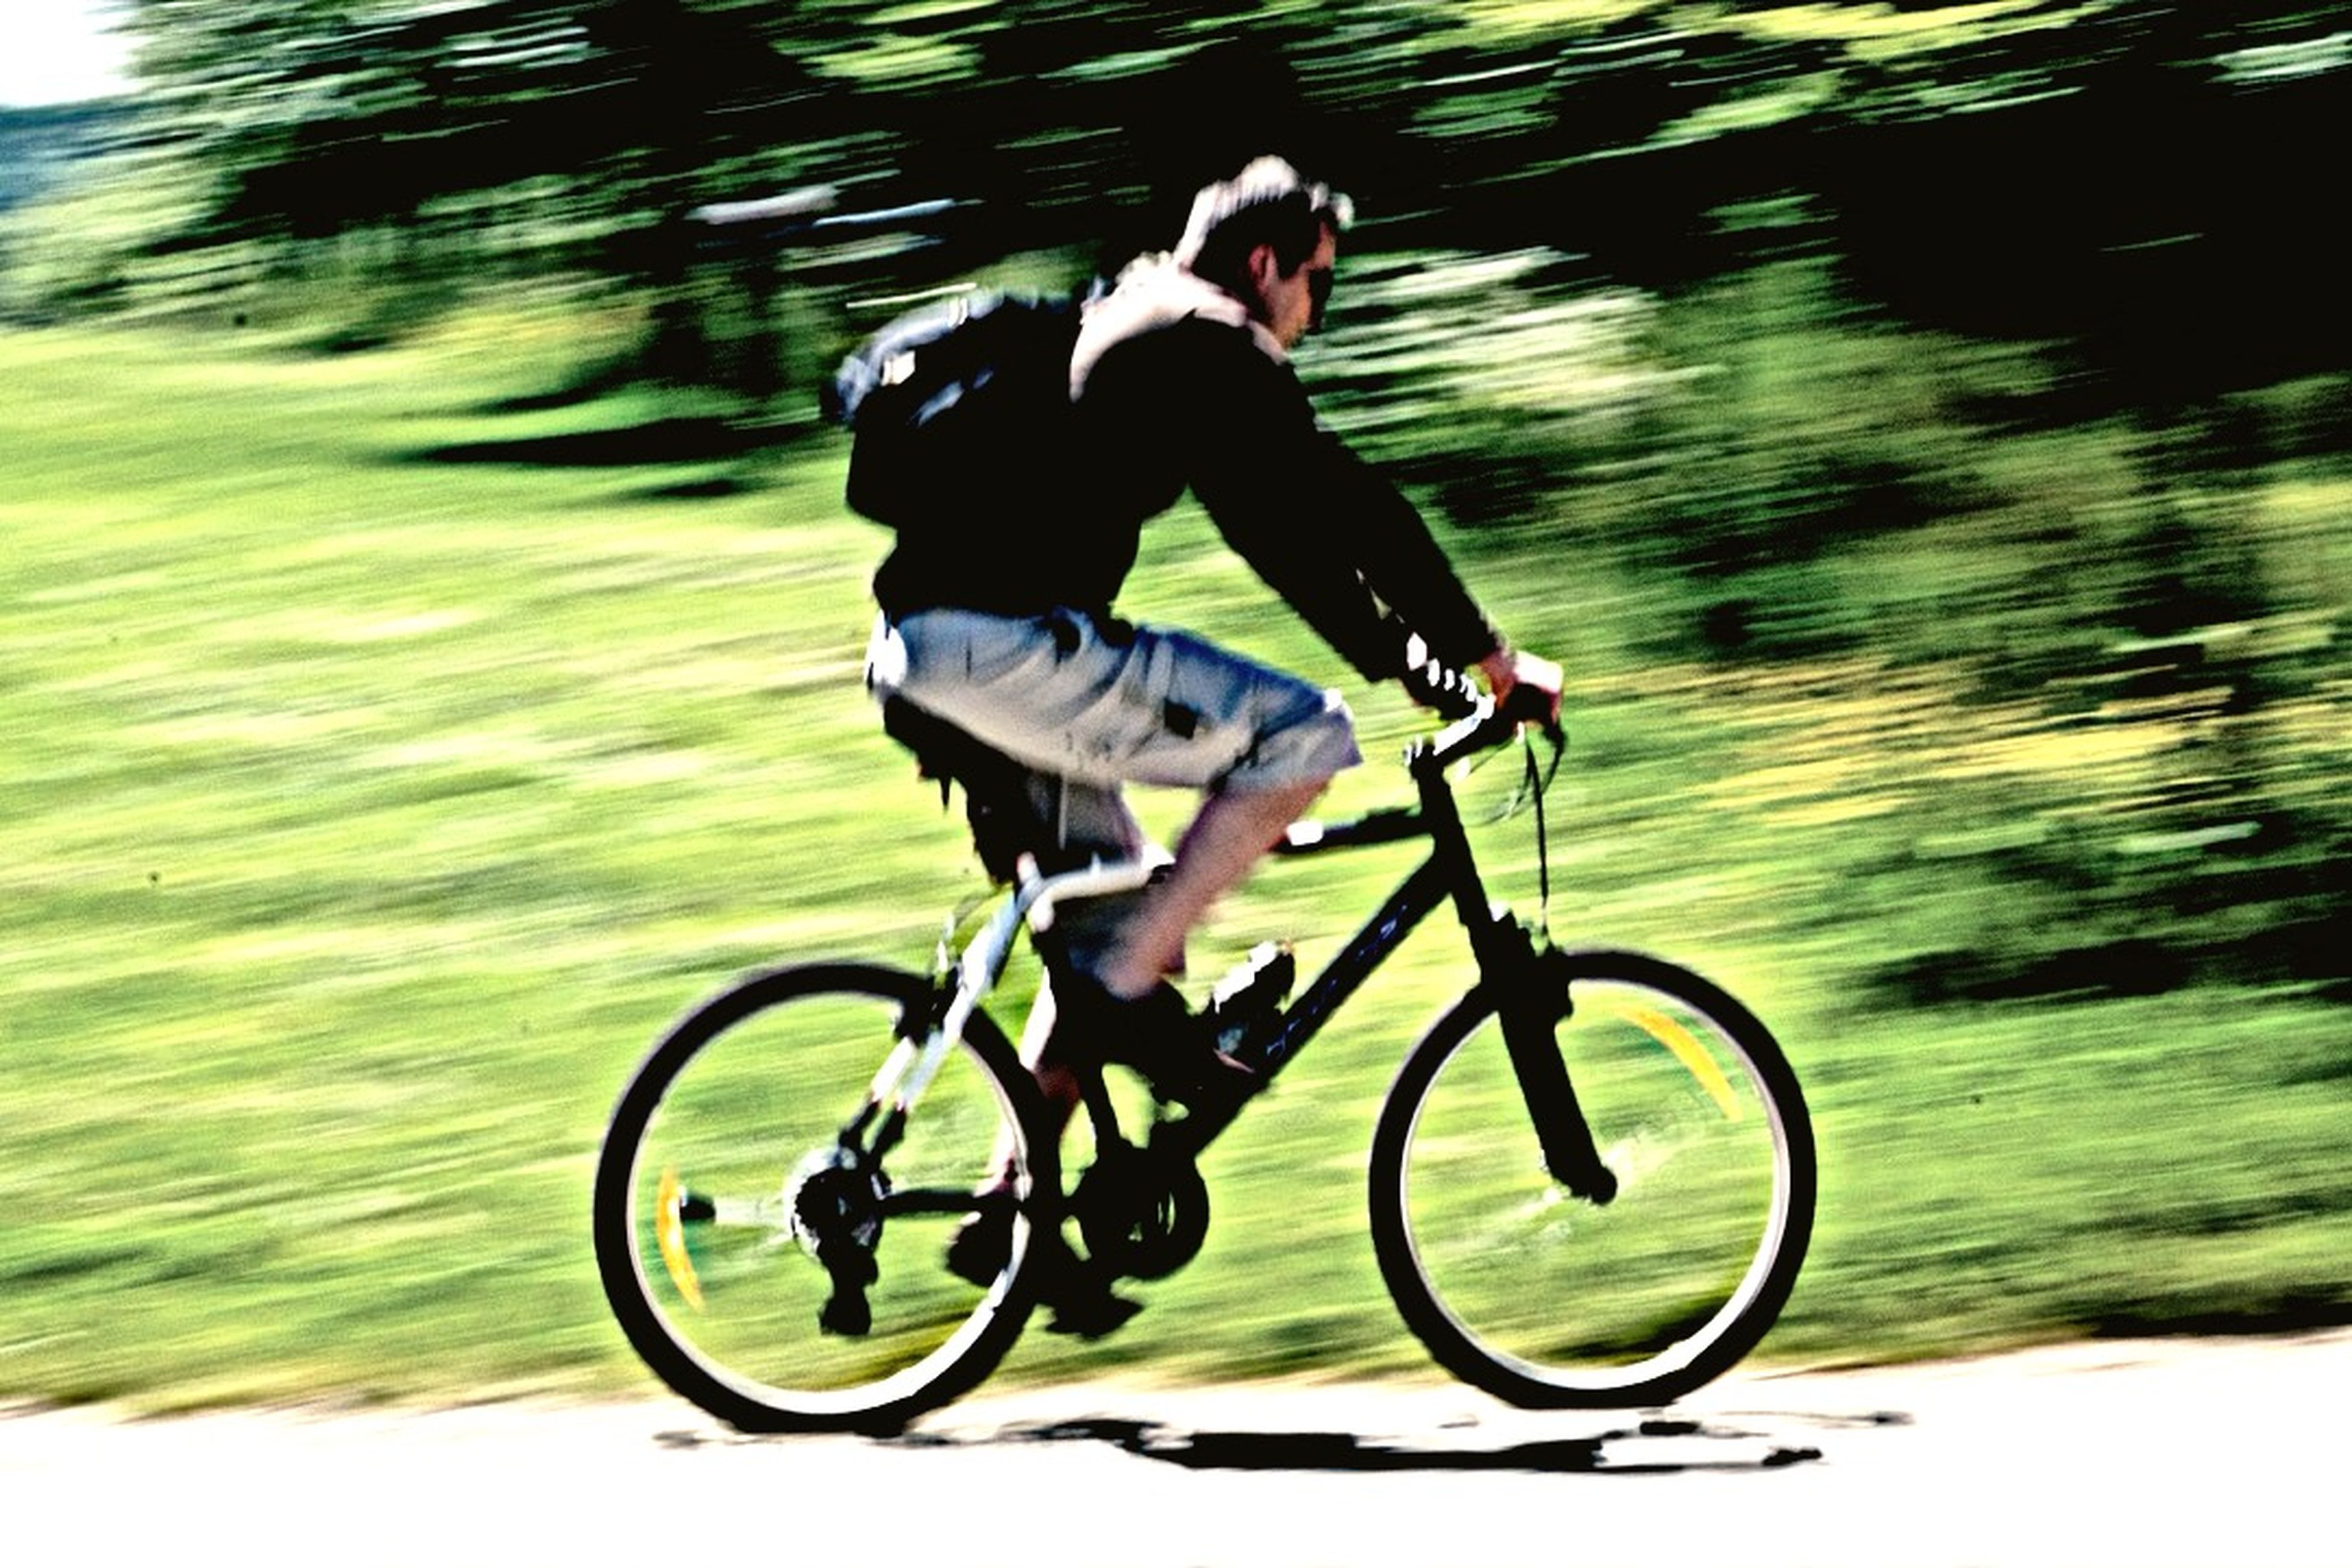 bicycle, riding, mode of transport, transportation, full length, lifestyles, land vehicle, leisure activity, men, on the move, cycling, side view, healthy lifestyle, motion, travel, casual clothing, road, sport